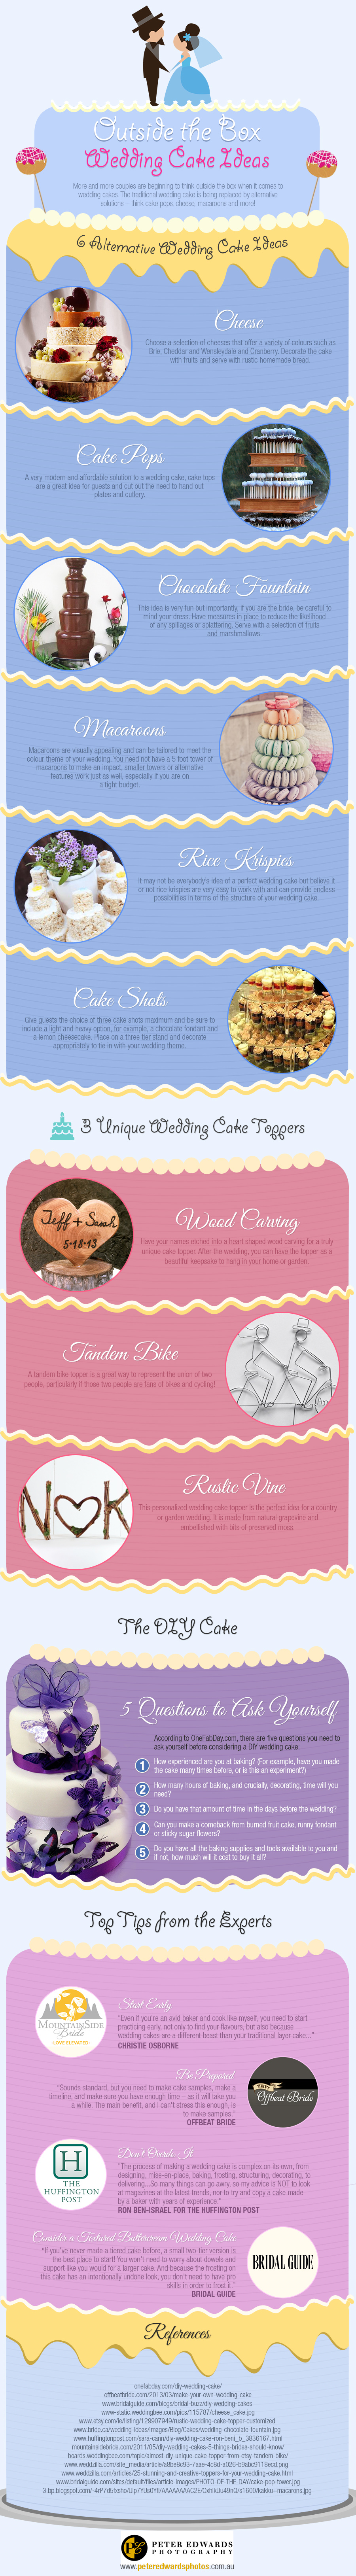 PeterEdwards-Wedding-Cakes-Ideas-An-Infographic